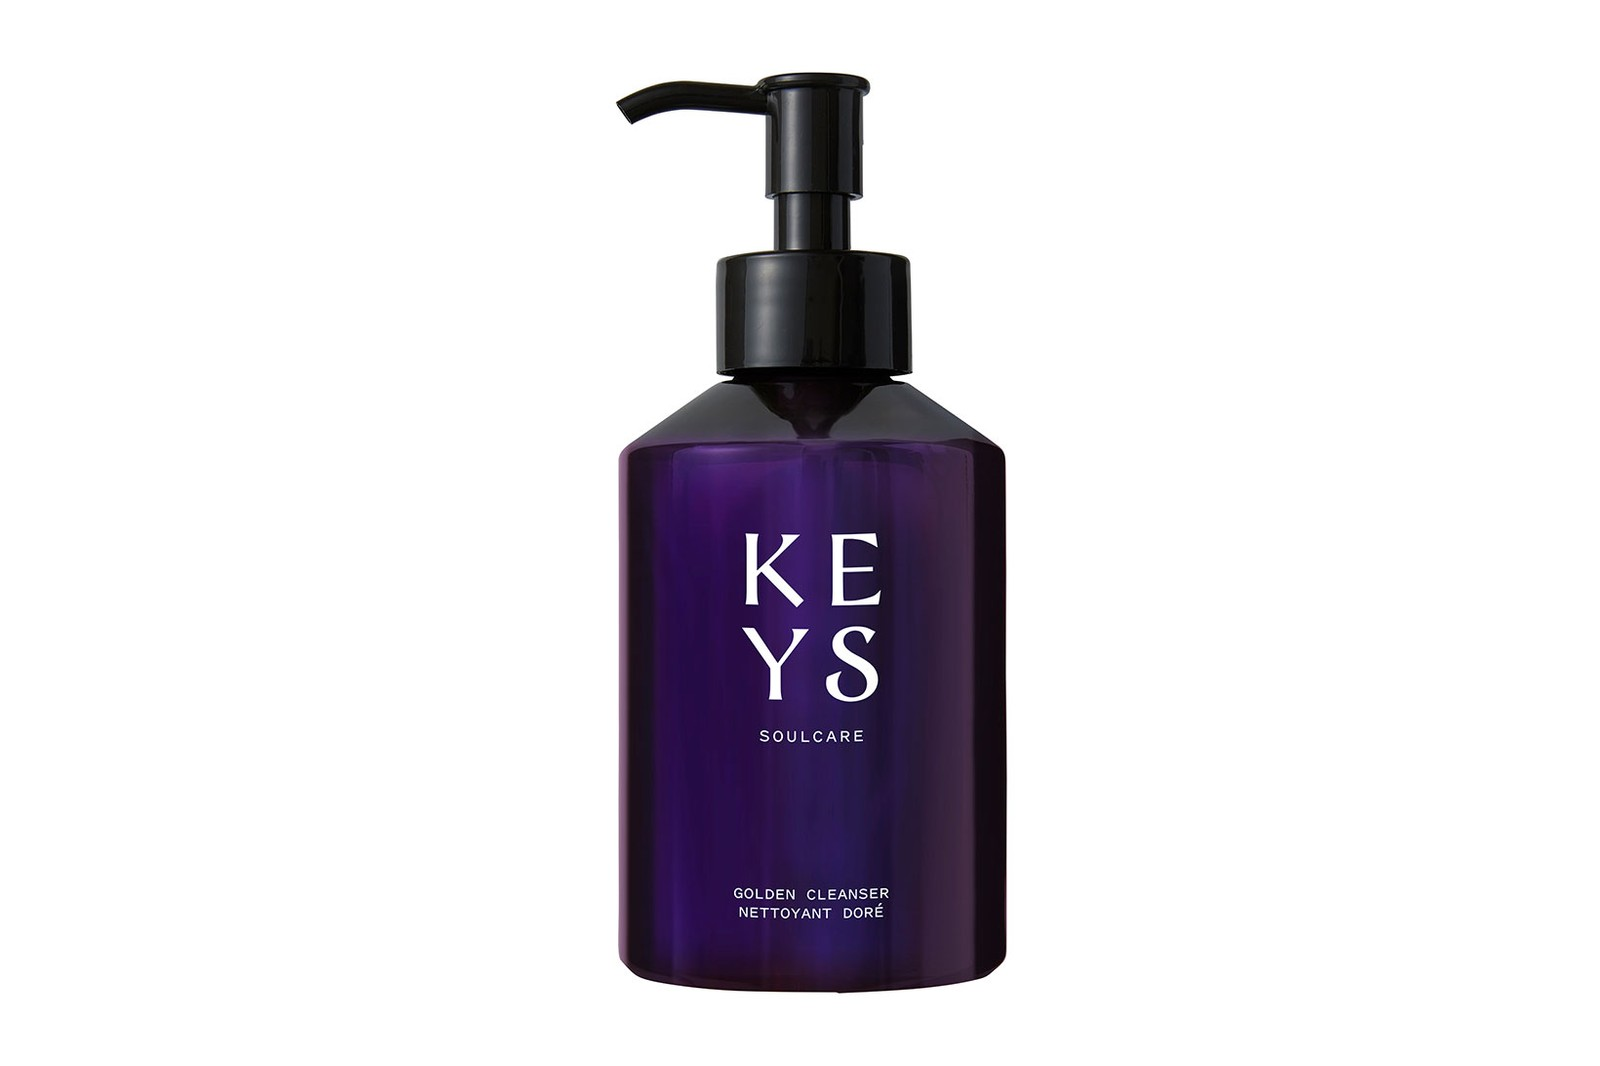 alicia keys soulcare skincare full collection cleansers masks face mist creams